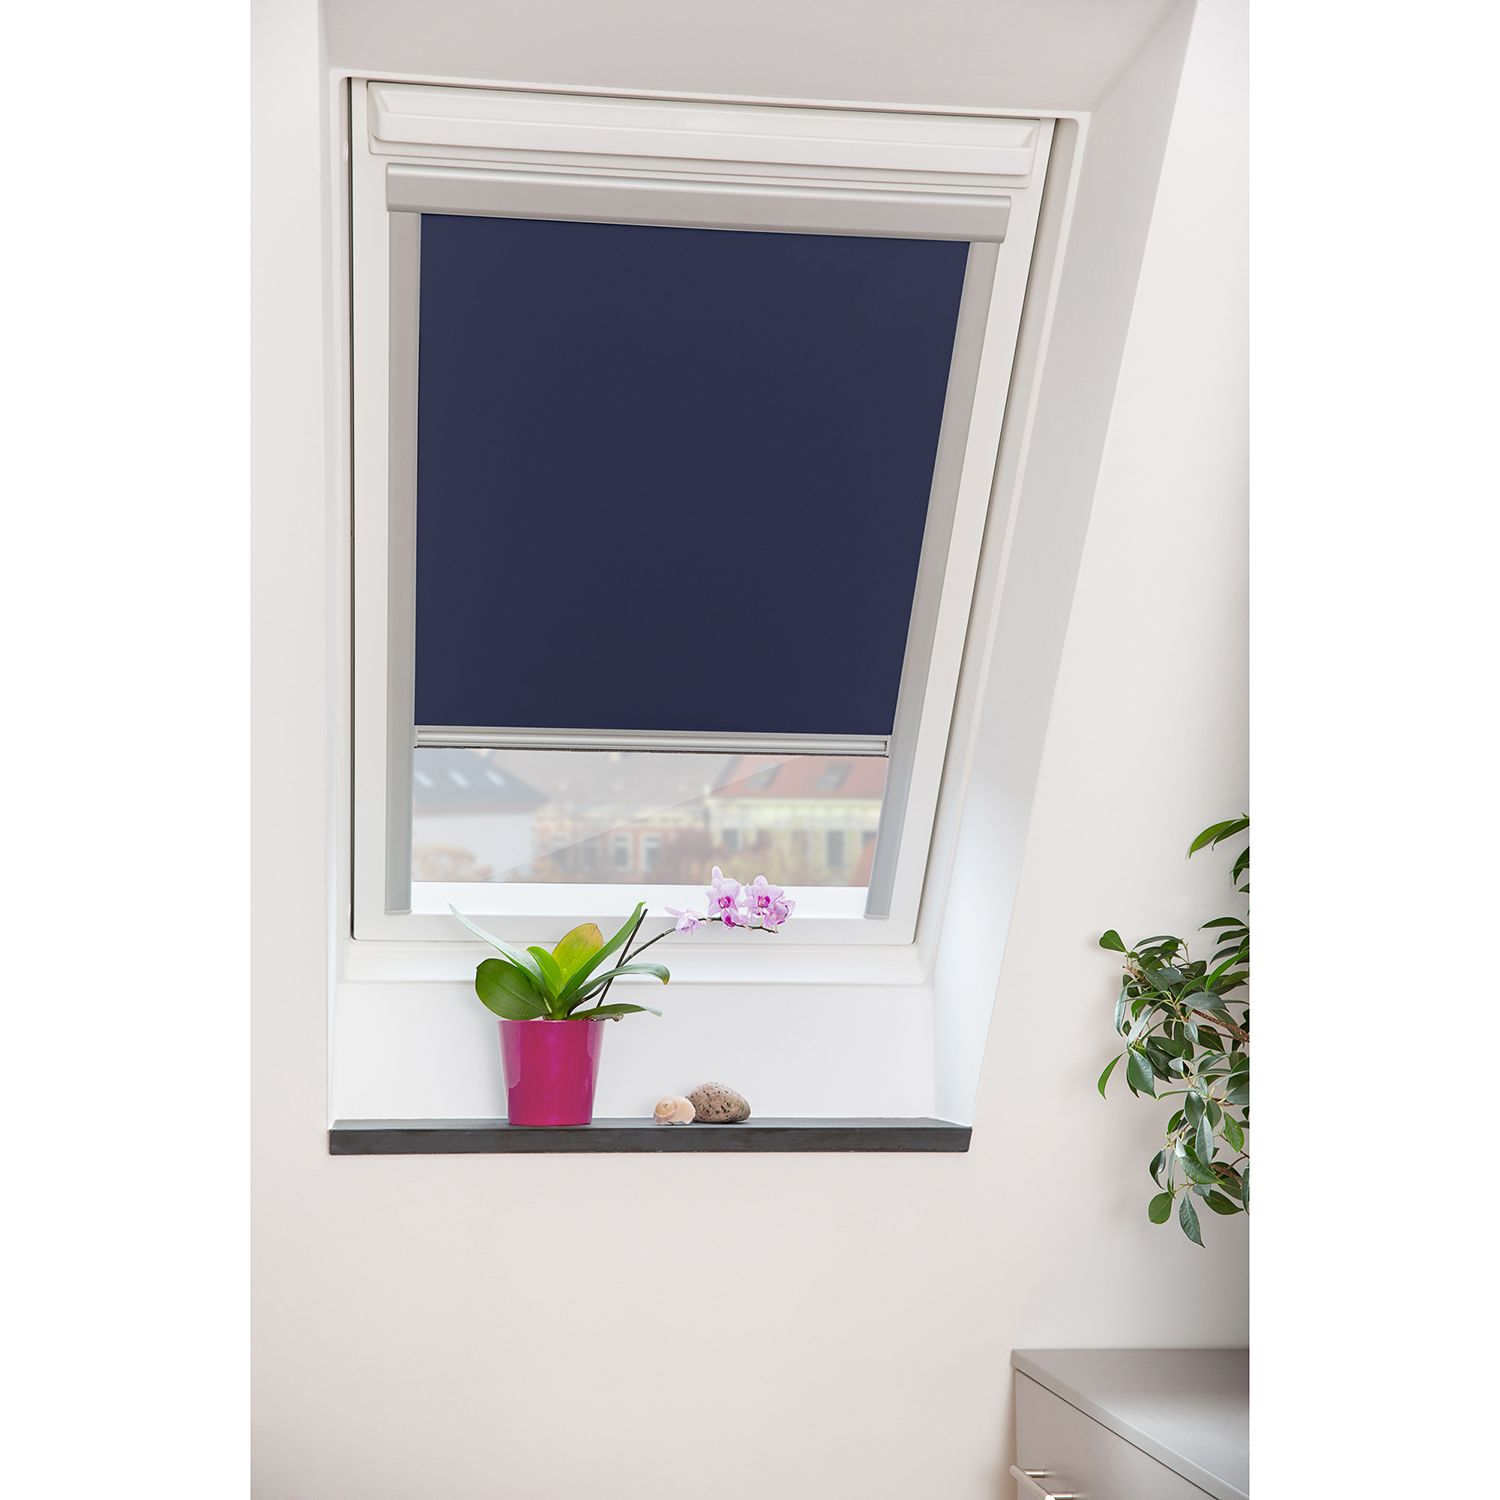 Dachfensterrollo Skylight, Lichtblick